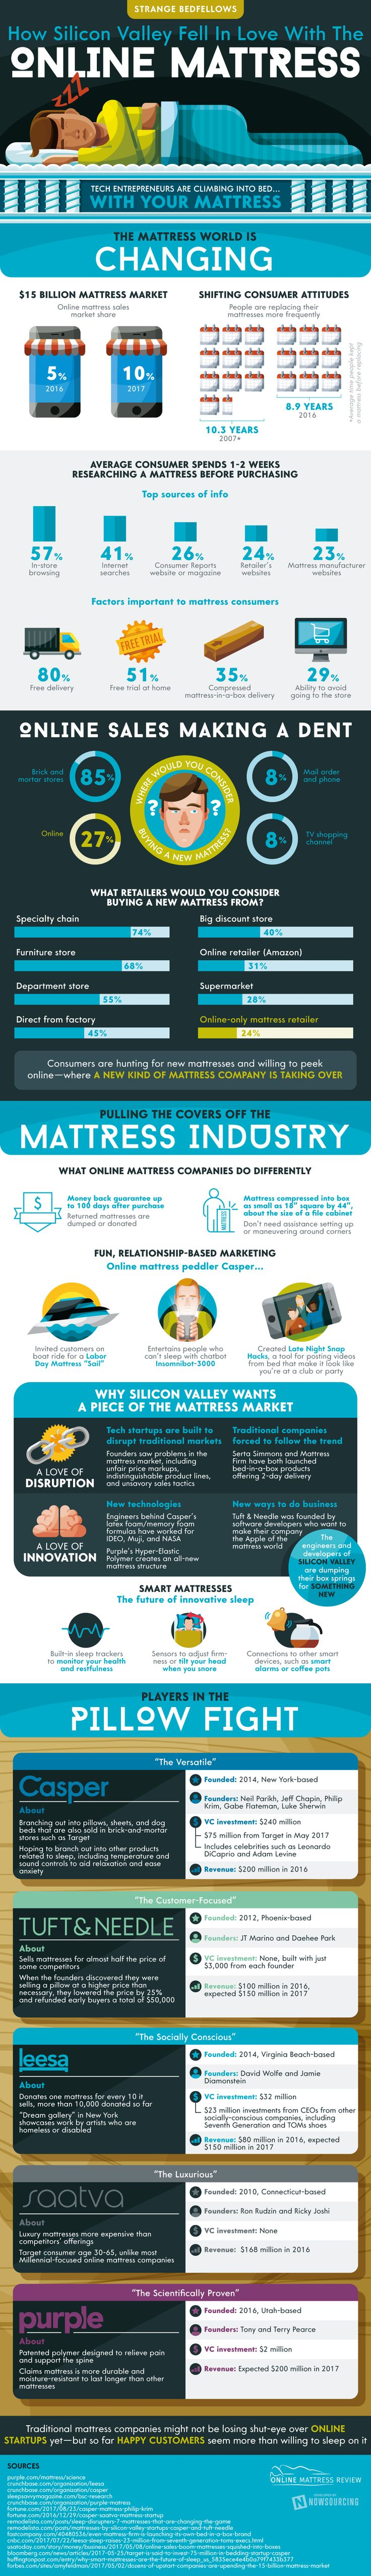 Strange Bedfellows: How Silicon Valley Fell In Love With The Online Mattress